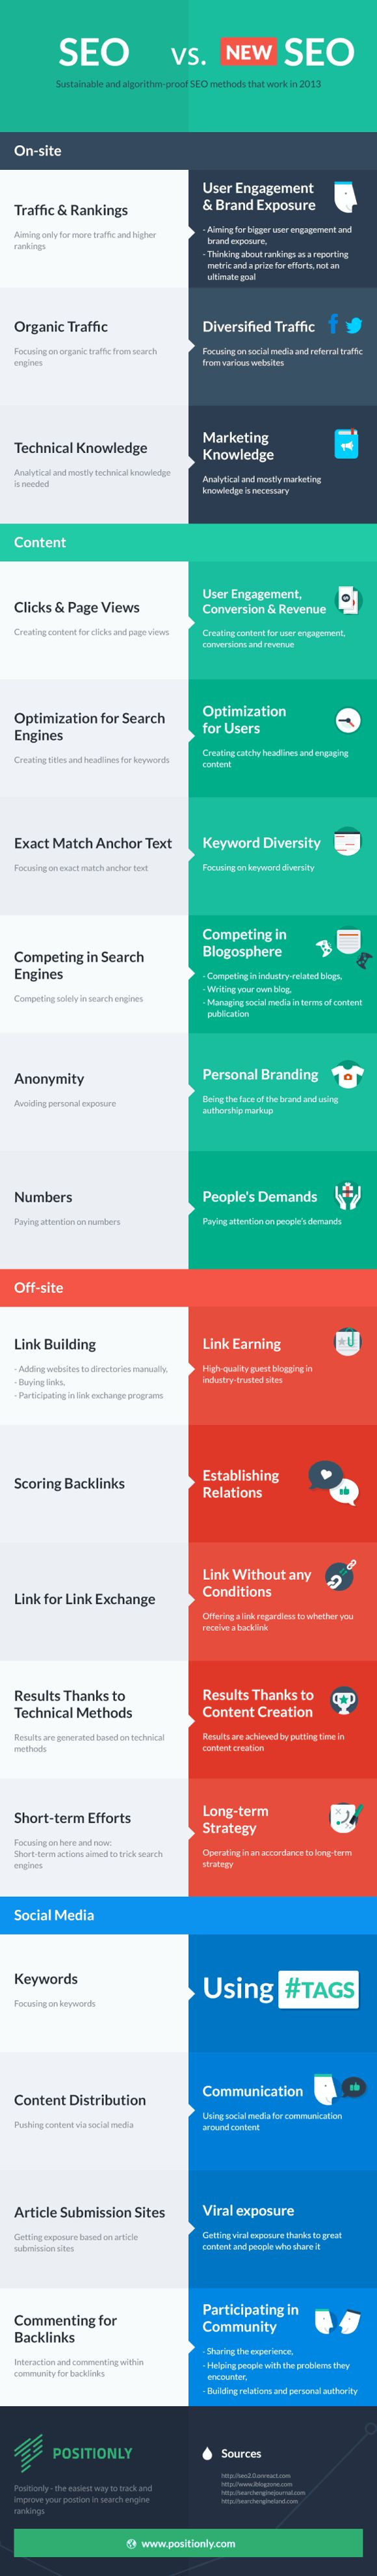 Las nuevas reglas del SEO 'Search Engine Optimization' #infografia